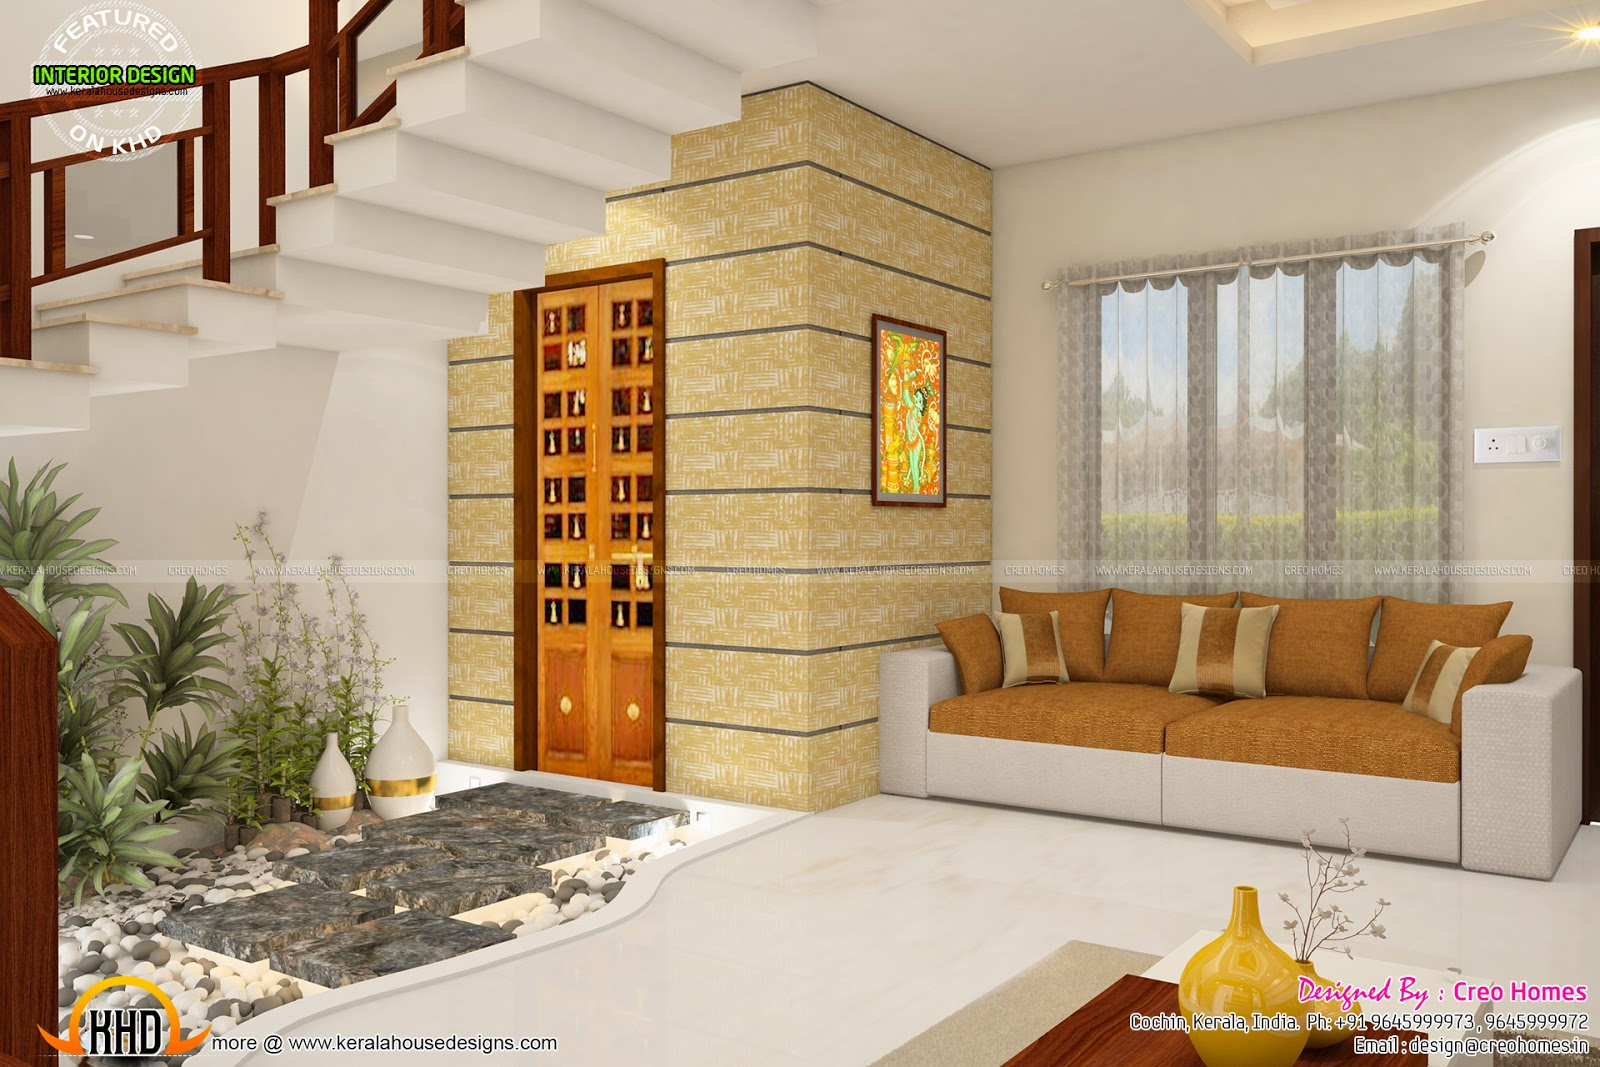 Total home interior solutions by creo homes kerala home for Interior decoration of house photos